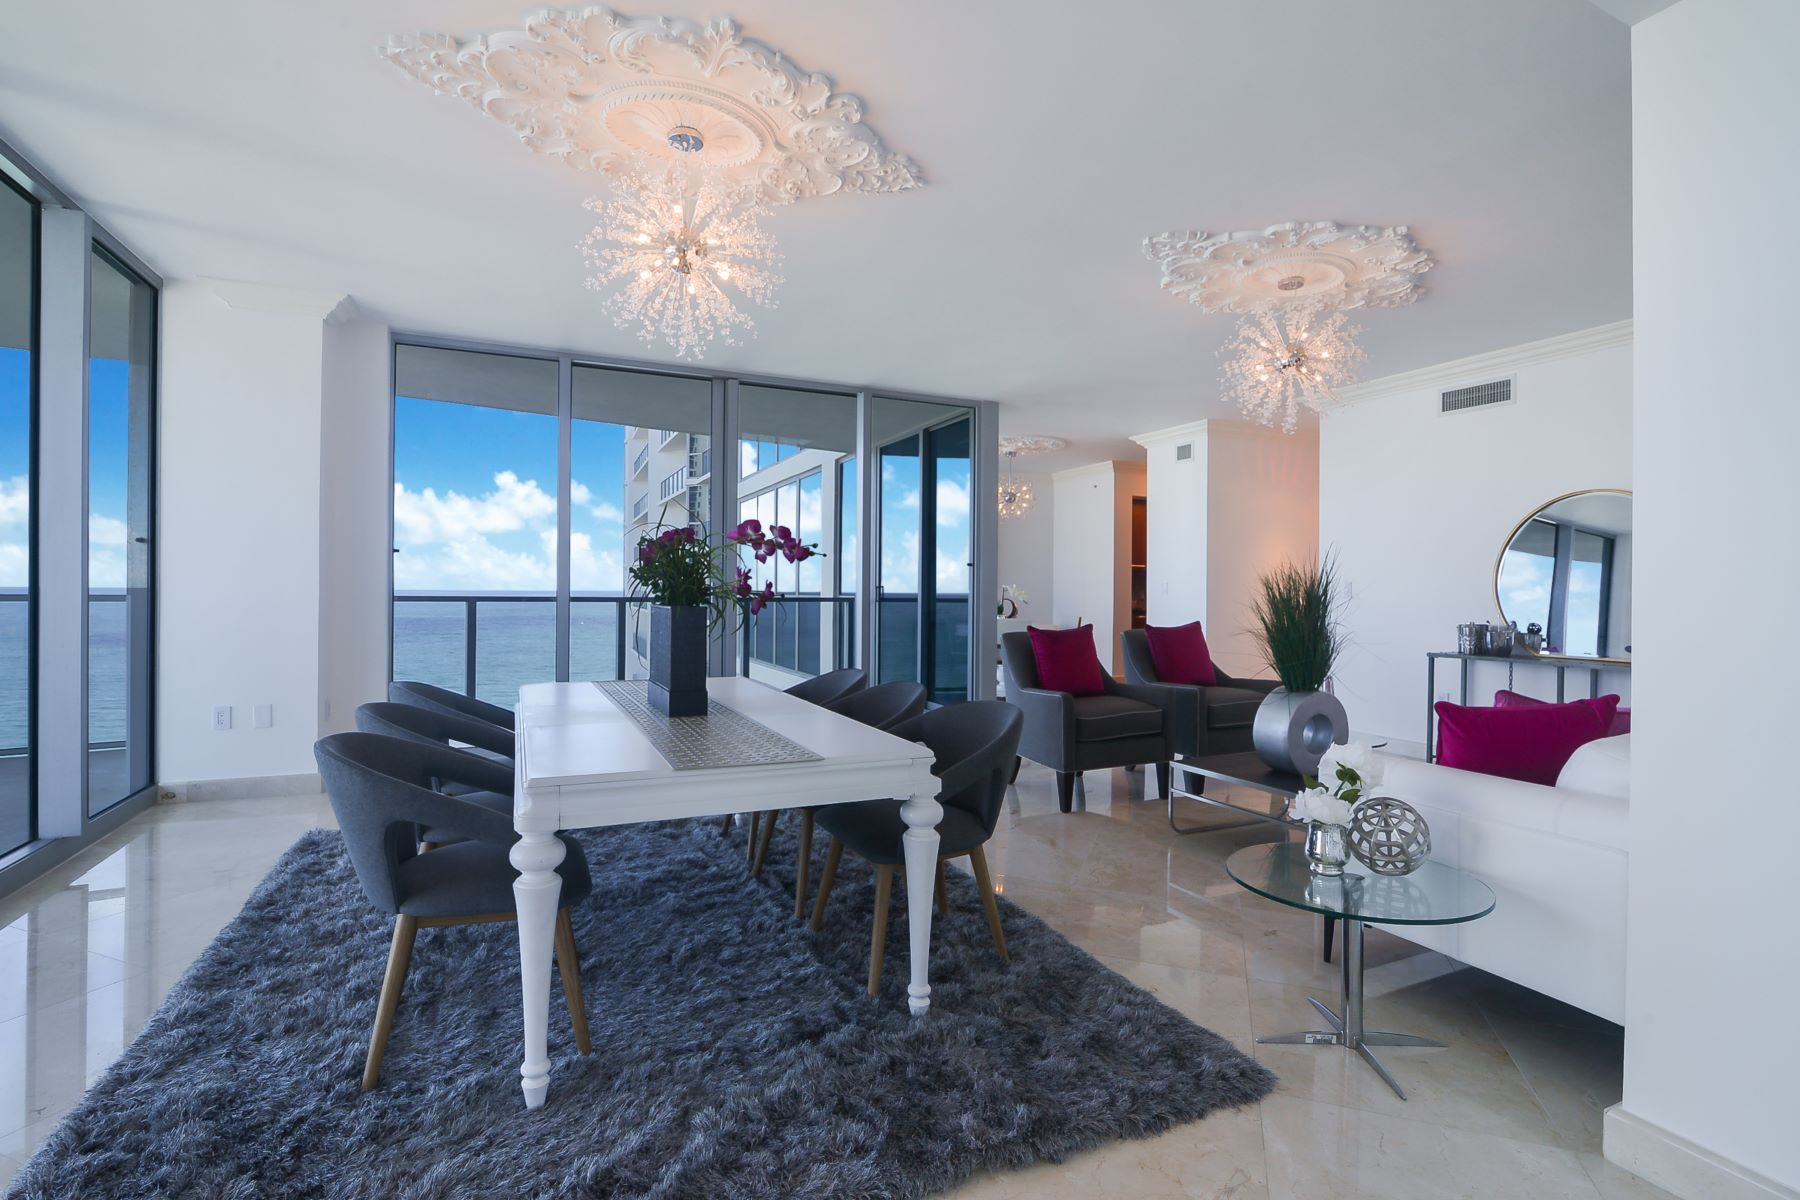 Condominiums for Sale at 3101 S Ocean Dr 2201 Hollywood, Florida 33019 United States